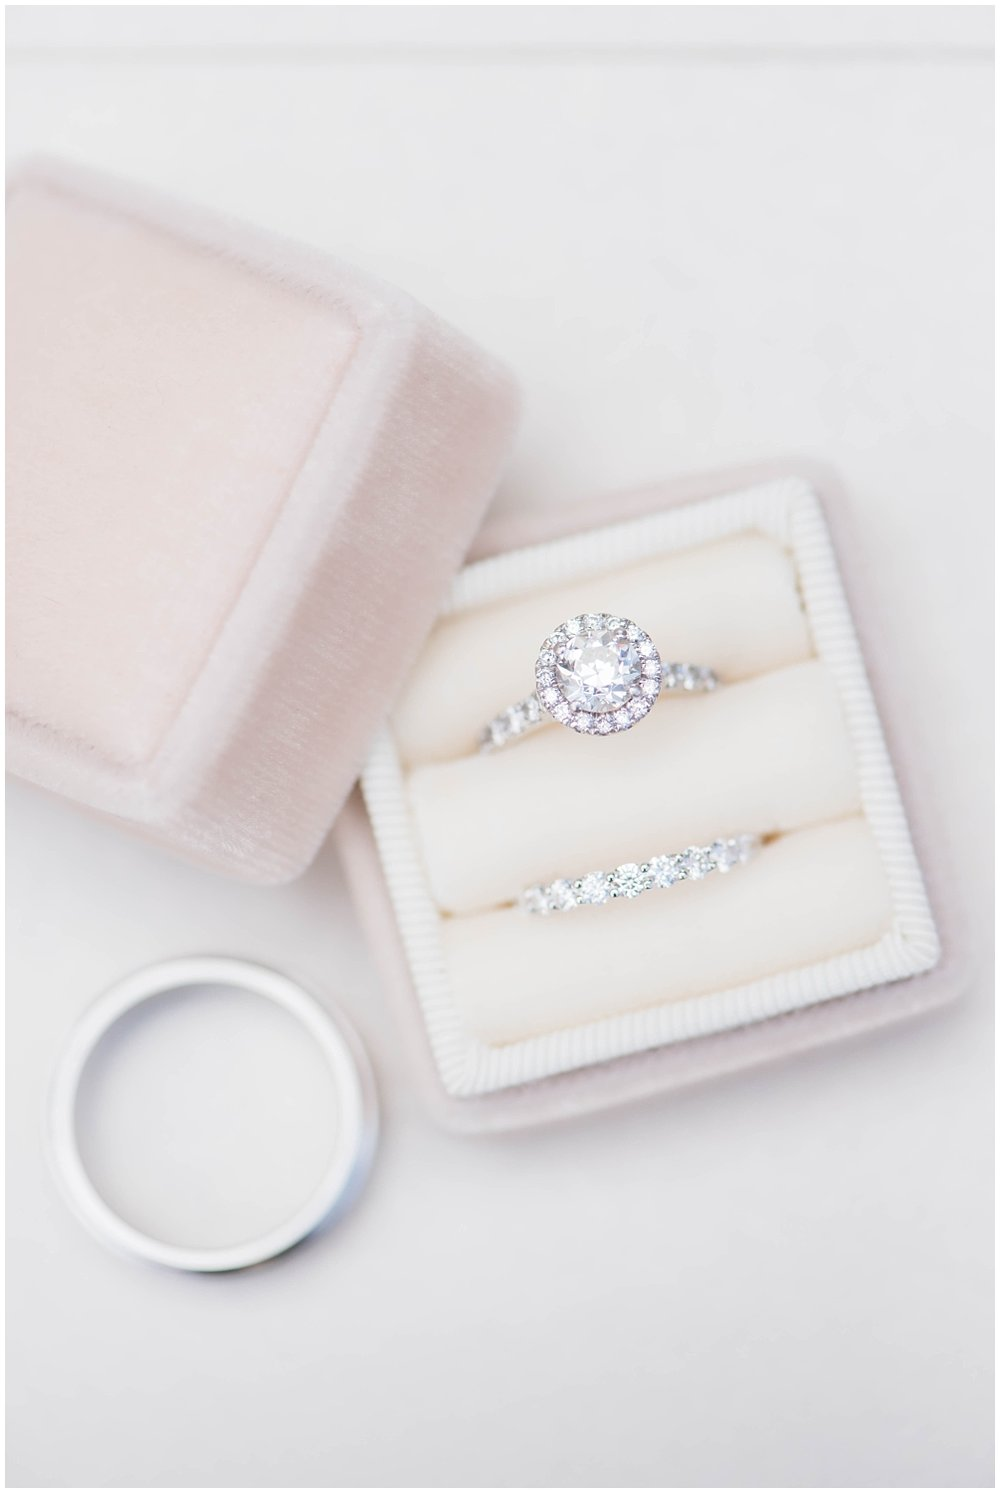 Diamond ring in blush velvet ring box